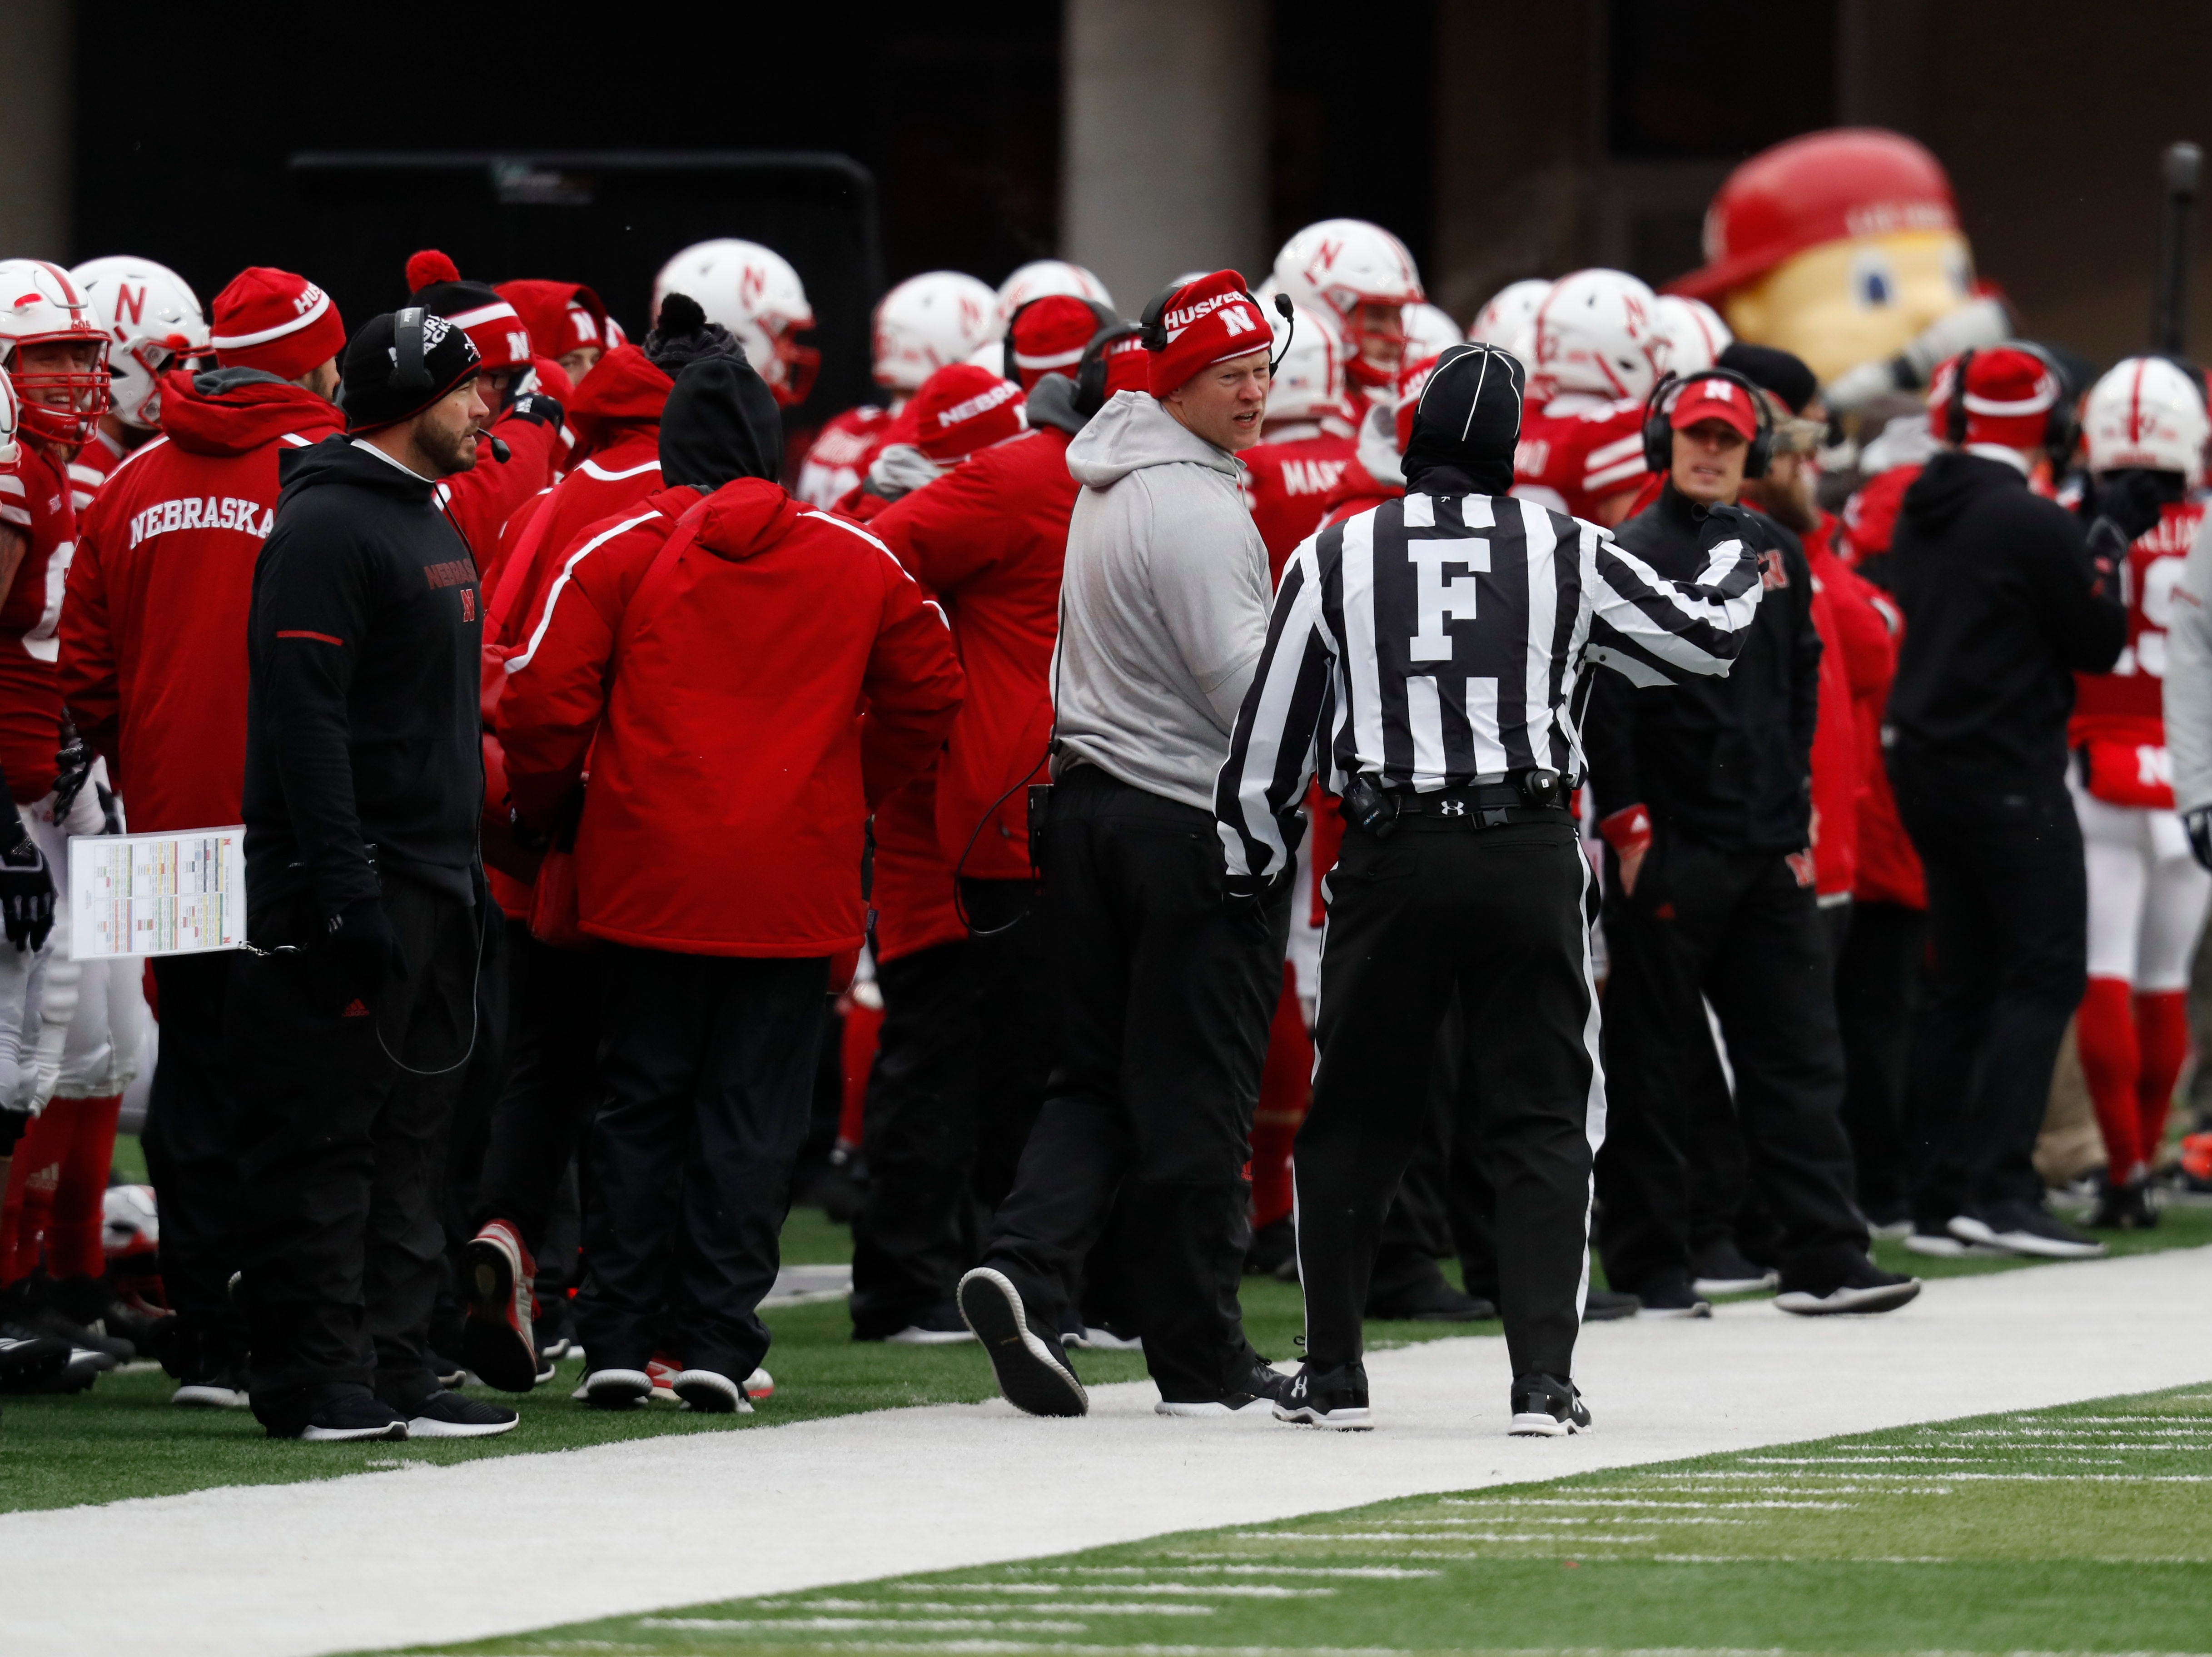 Nov 17, 2018; Lincoln, NE, USA; Nebraska Cornhuskers head coach Scott Frost talks to an official during the game against the Michigan State Spartans in the first half at Memorial Stadium. Mandatory Credit: Bruce Thorson-USA TODAY Sports